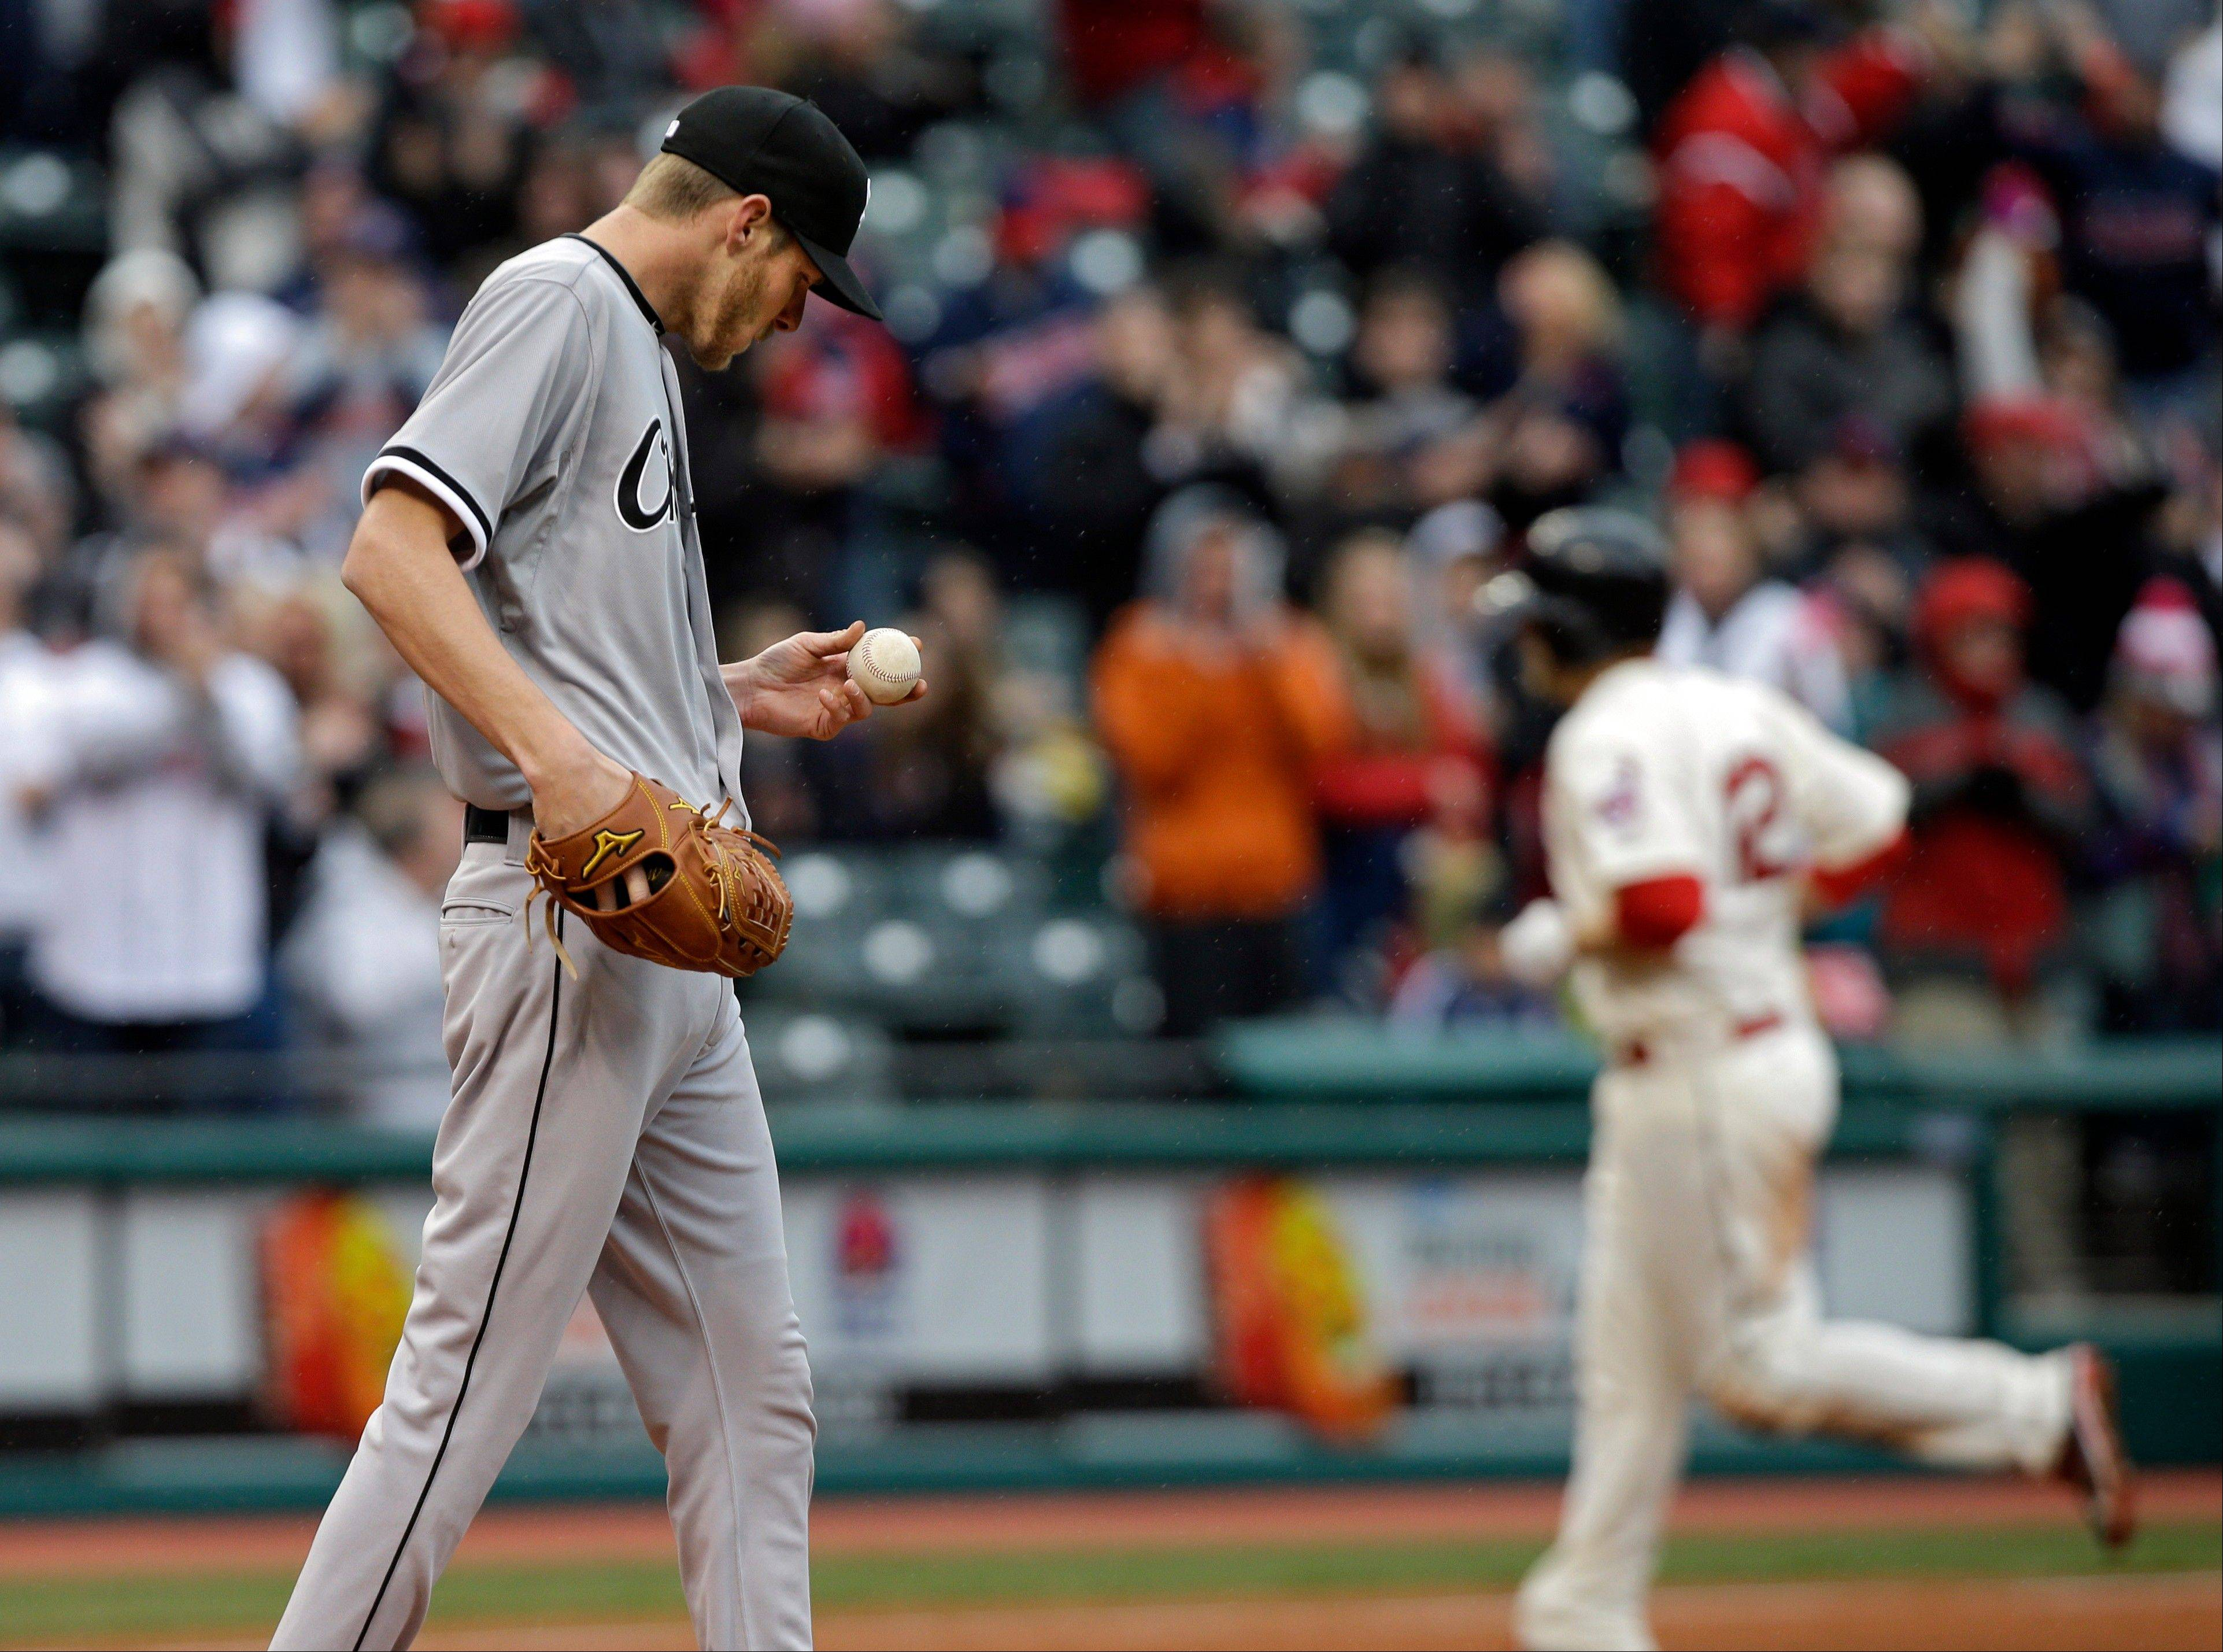 Chicago White Sox starting pitcher Chris Sale walks back to the mound after giving up a grand slam to Cleveland Indians' Mark Reynolds, background, in the fifth inning of a baseball game Saturday in Cleveland.